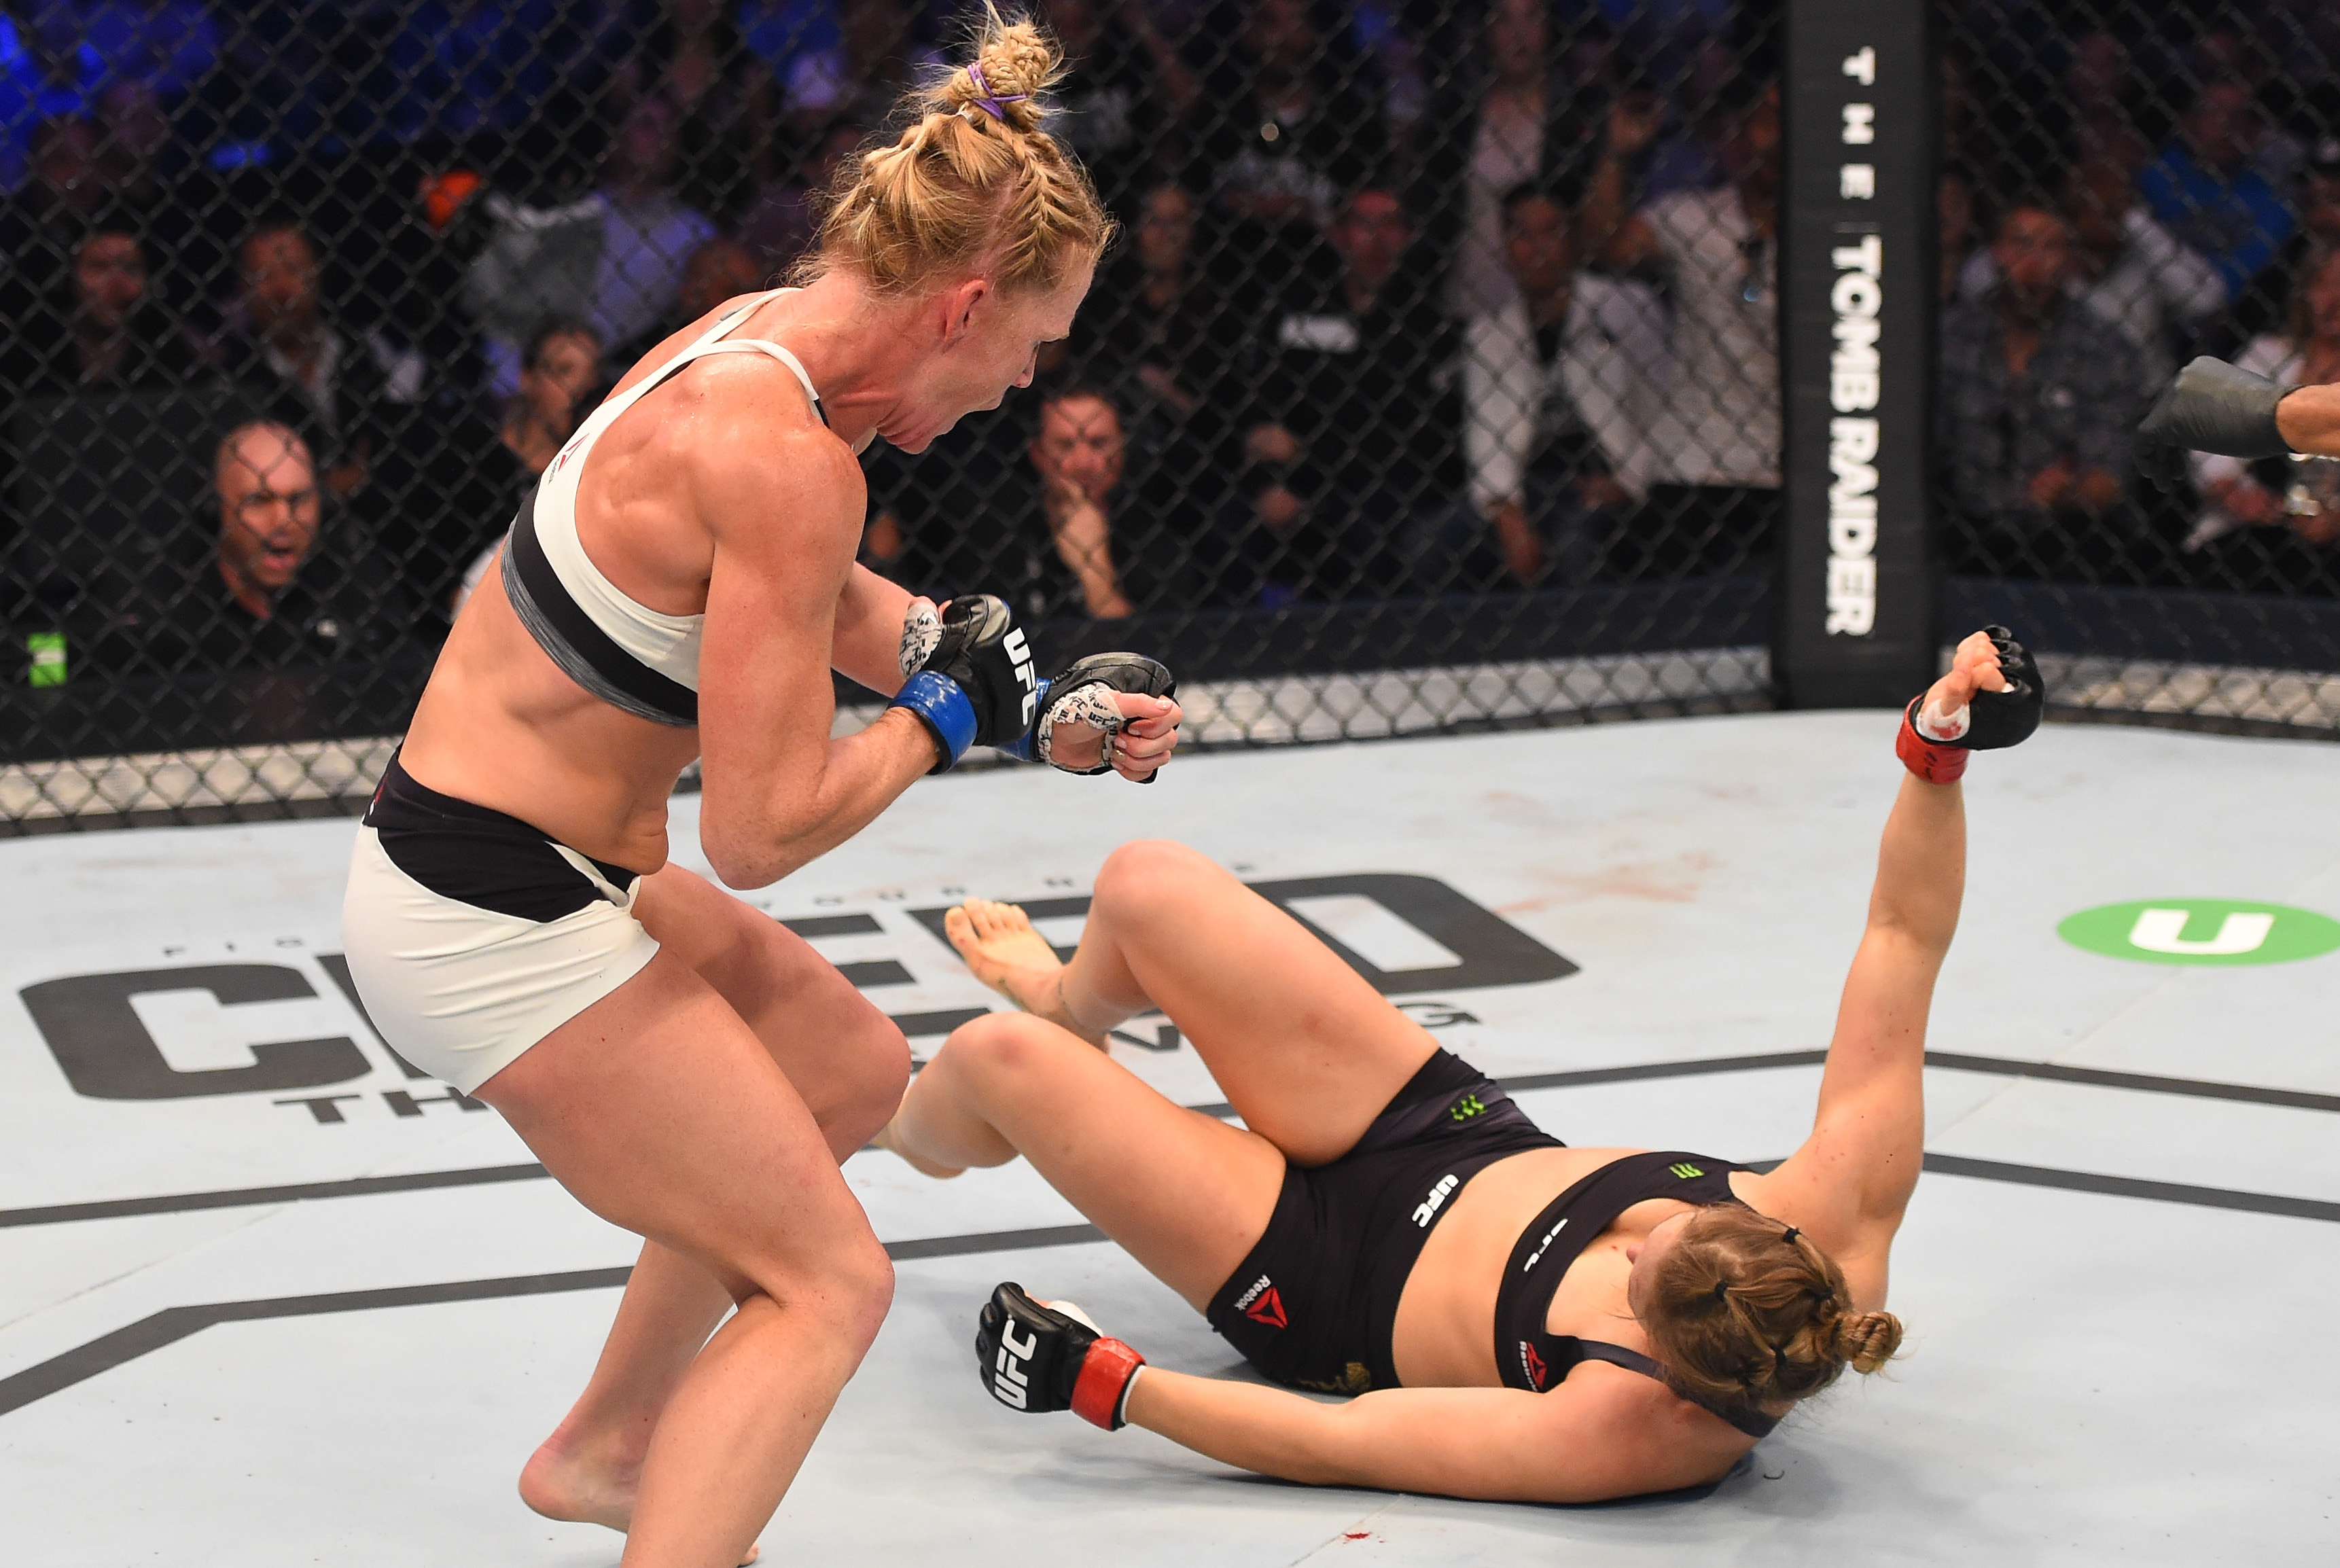 (L-R) Holly Holm of the United States follows up after knocking down Ronda Rousey of the United States with a kick in their UFC women's bantamweight championship bout during the UFC 193 event at Etihad Stadium on November 15, 2015 in Melbourne, Australia.